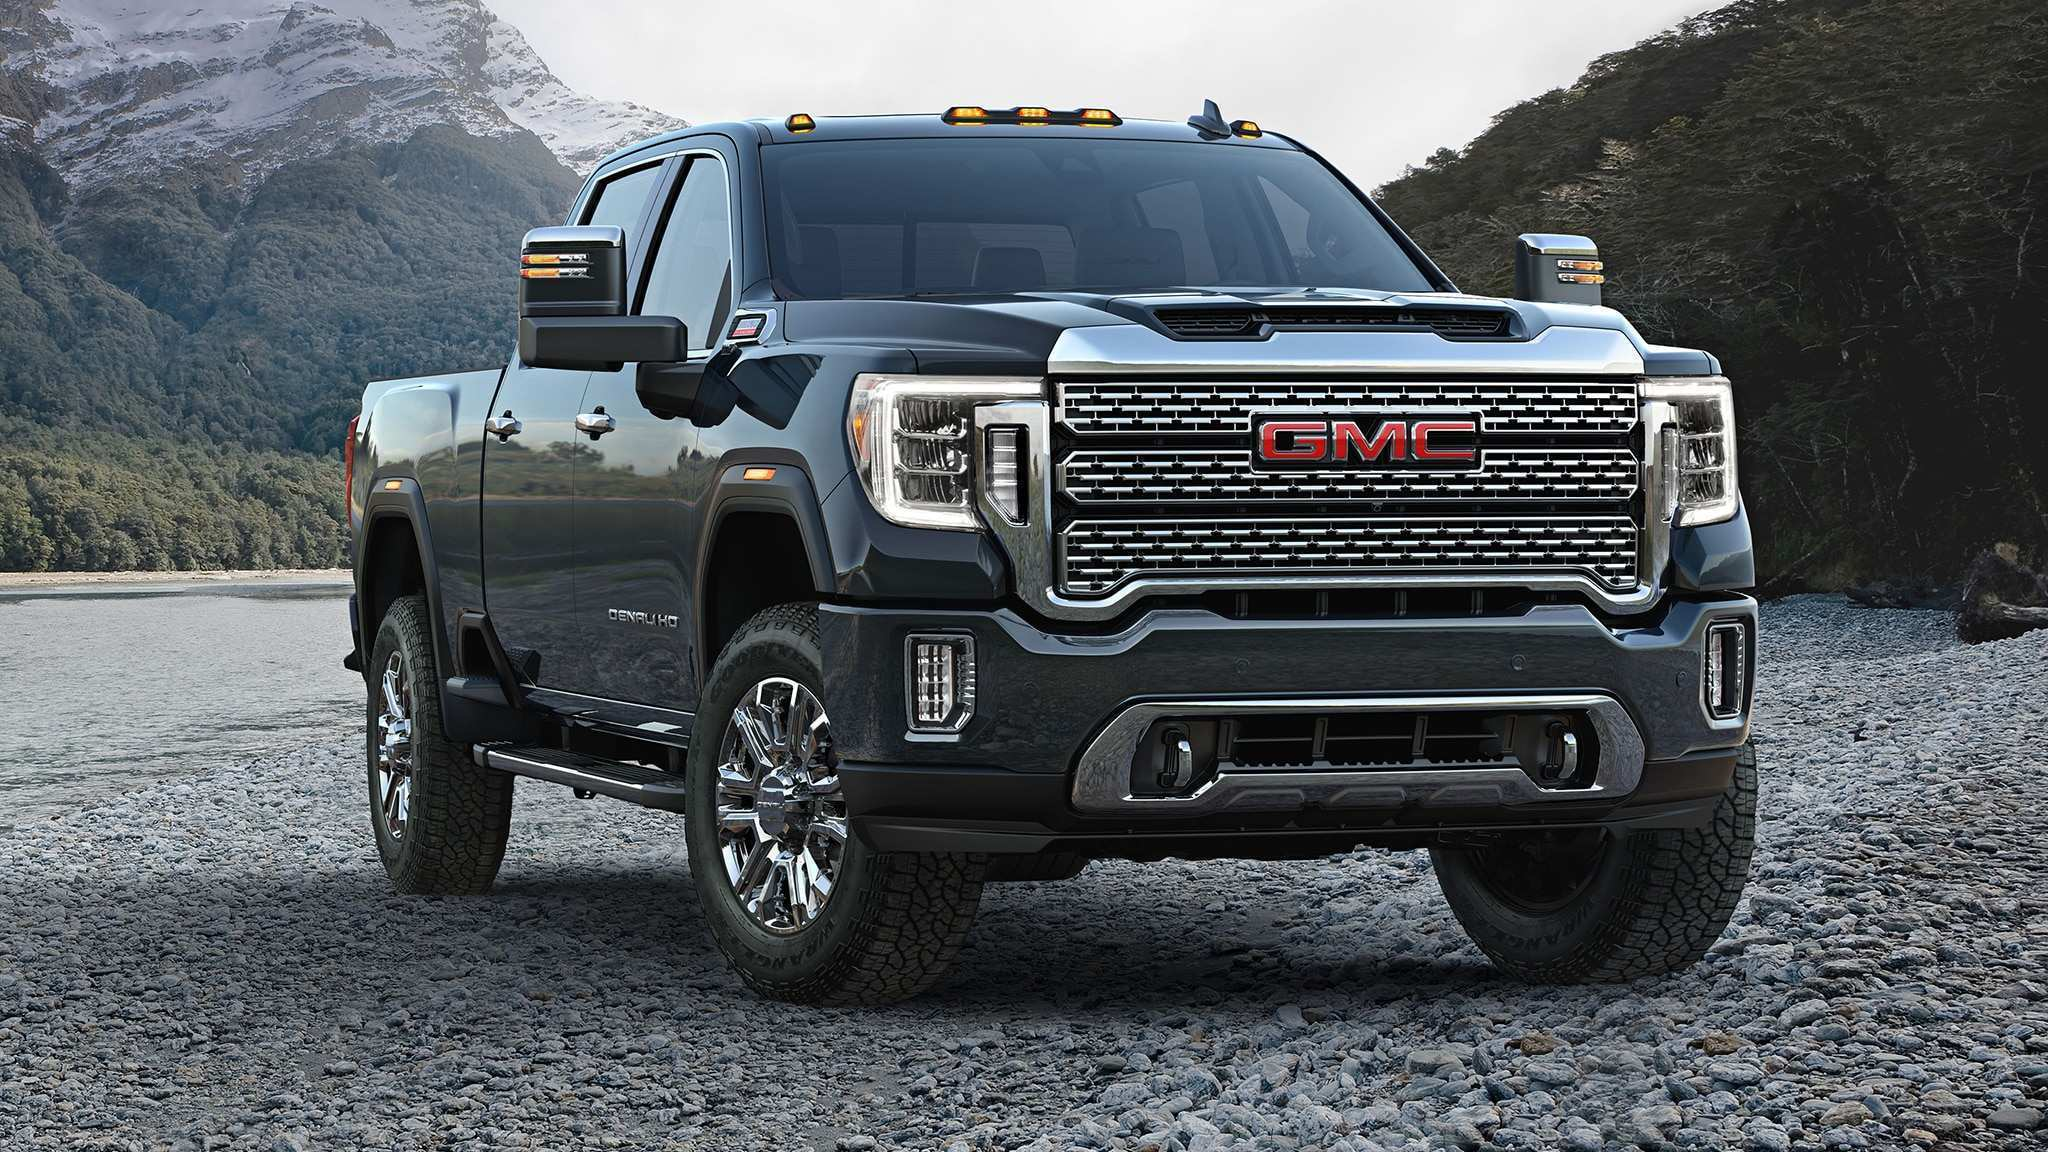 42 The Best 2020 GMC Sierra 1500 Diesel Configurations